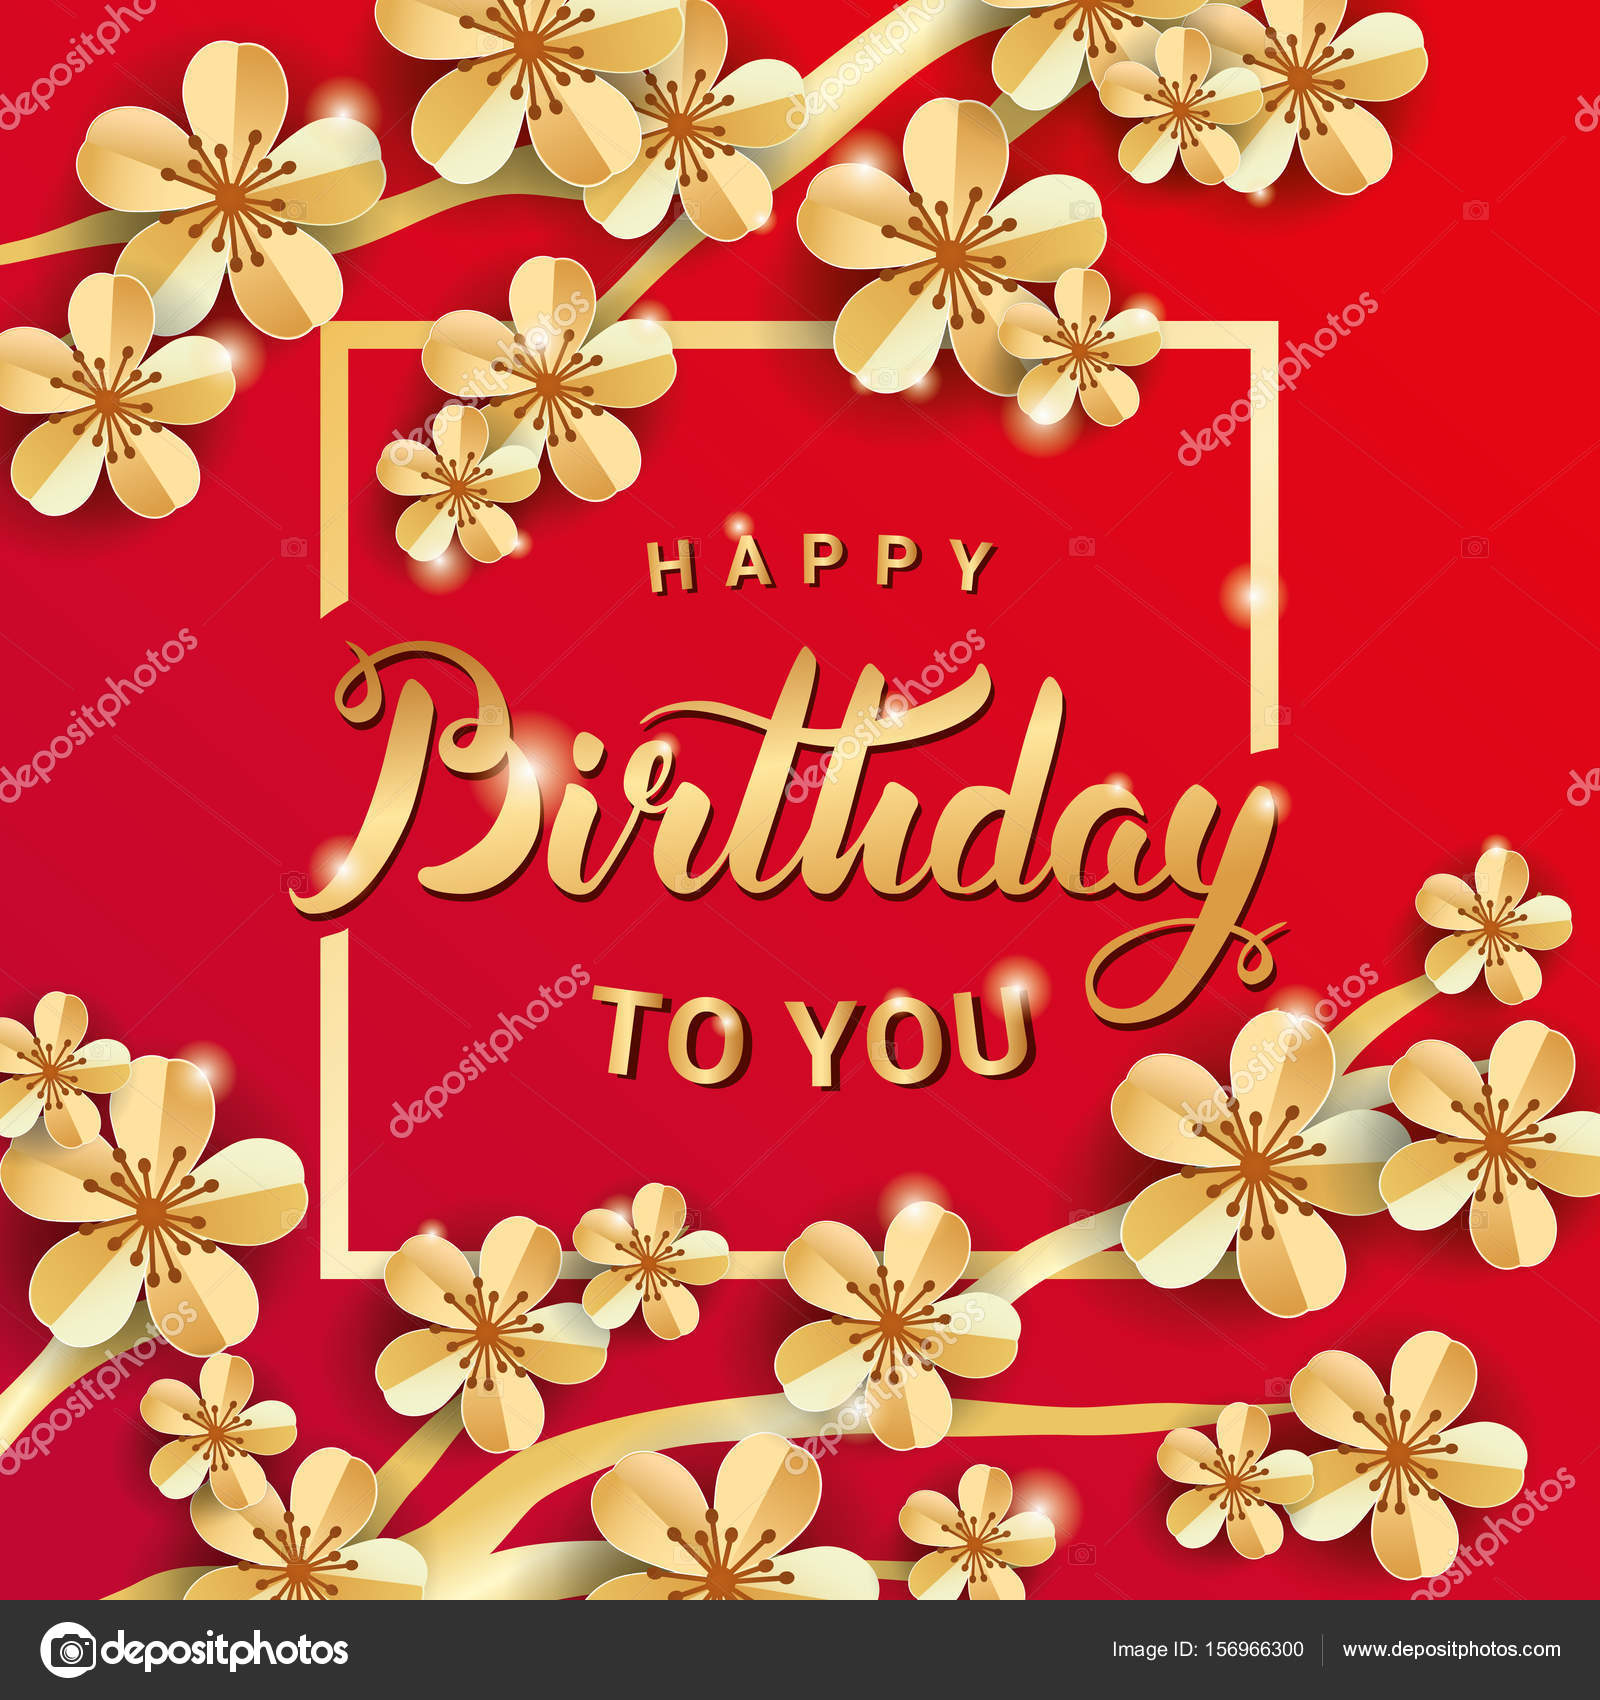 Gold flower happy birthday stock photo pirinairina 156966300 gold flower happy birthday stock photo izmirmasajfo Image collections